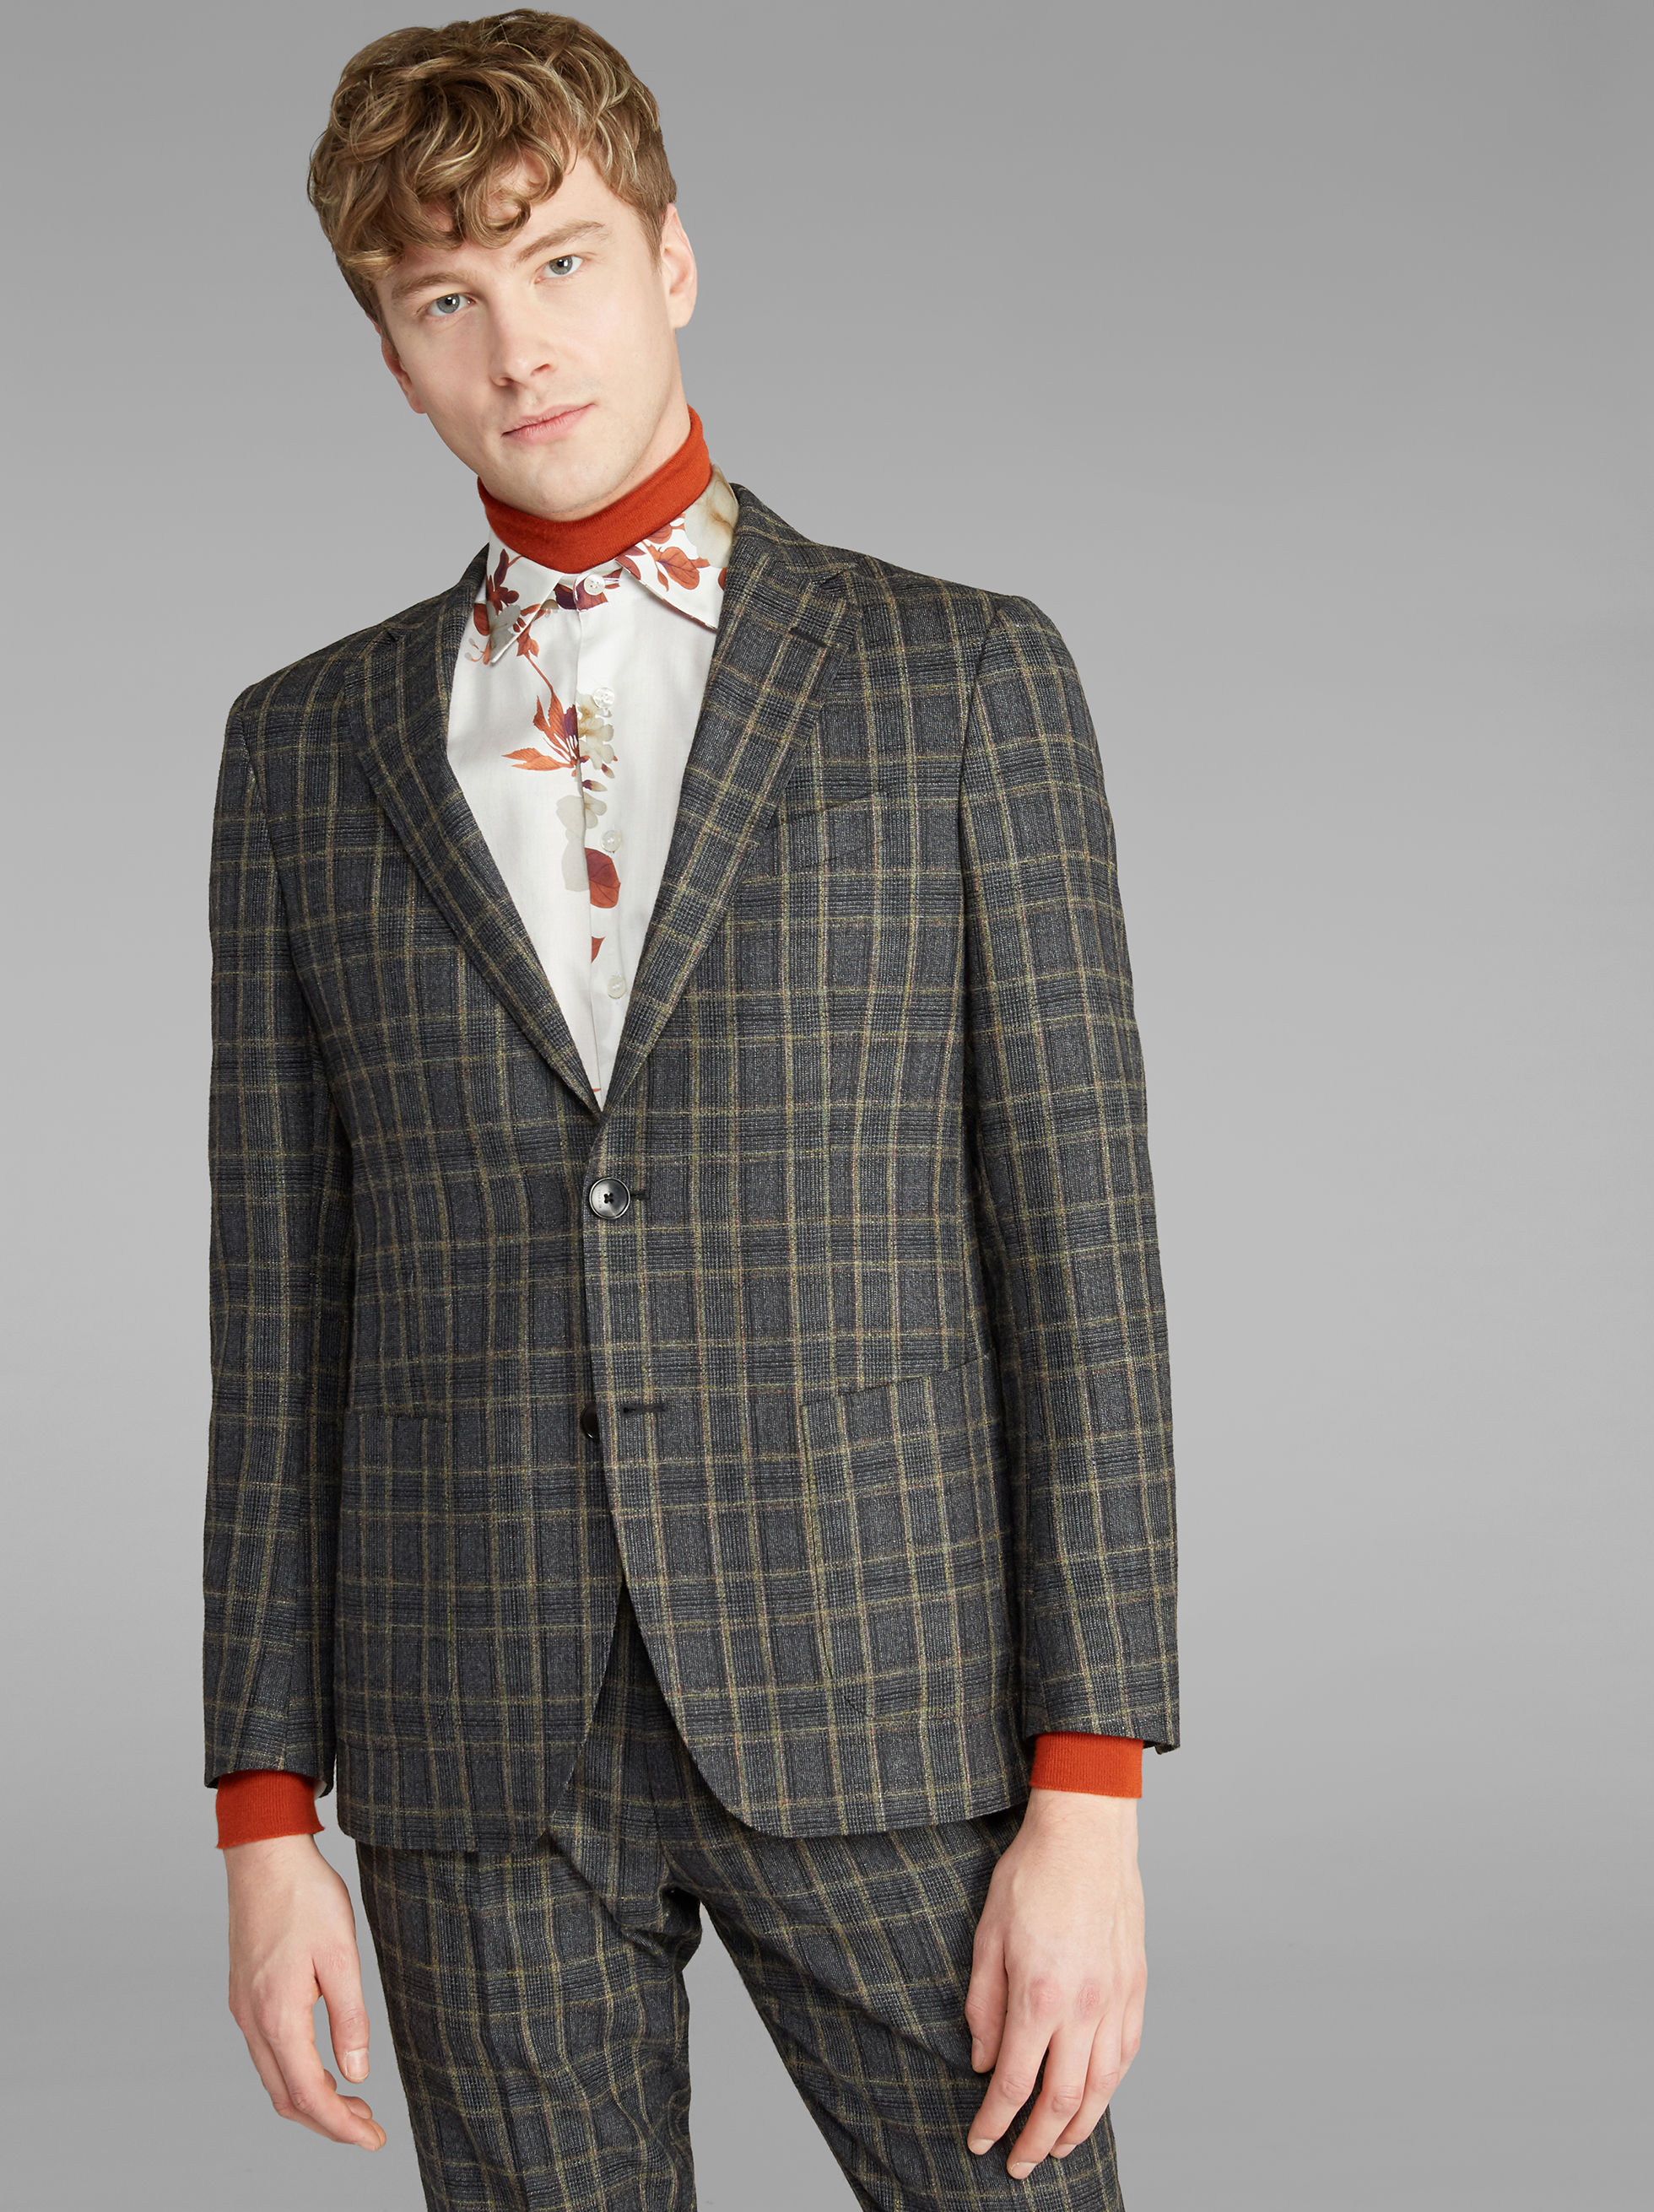 DECONSTRUCTED CHECK SUIT